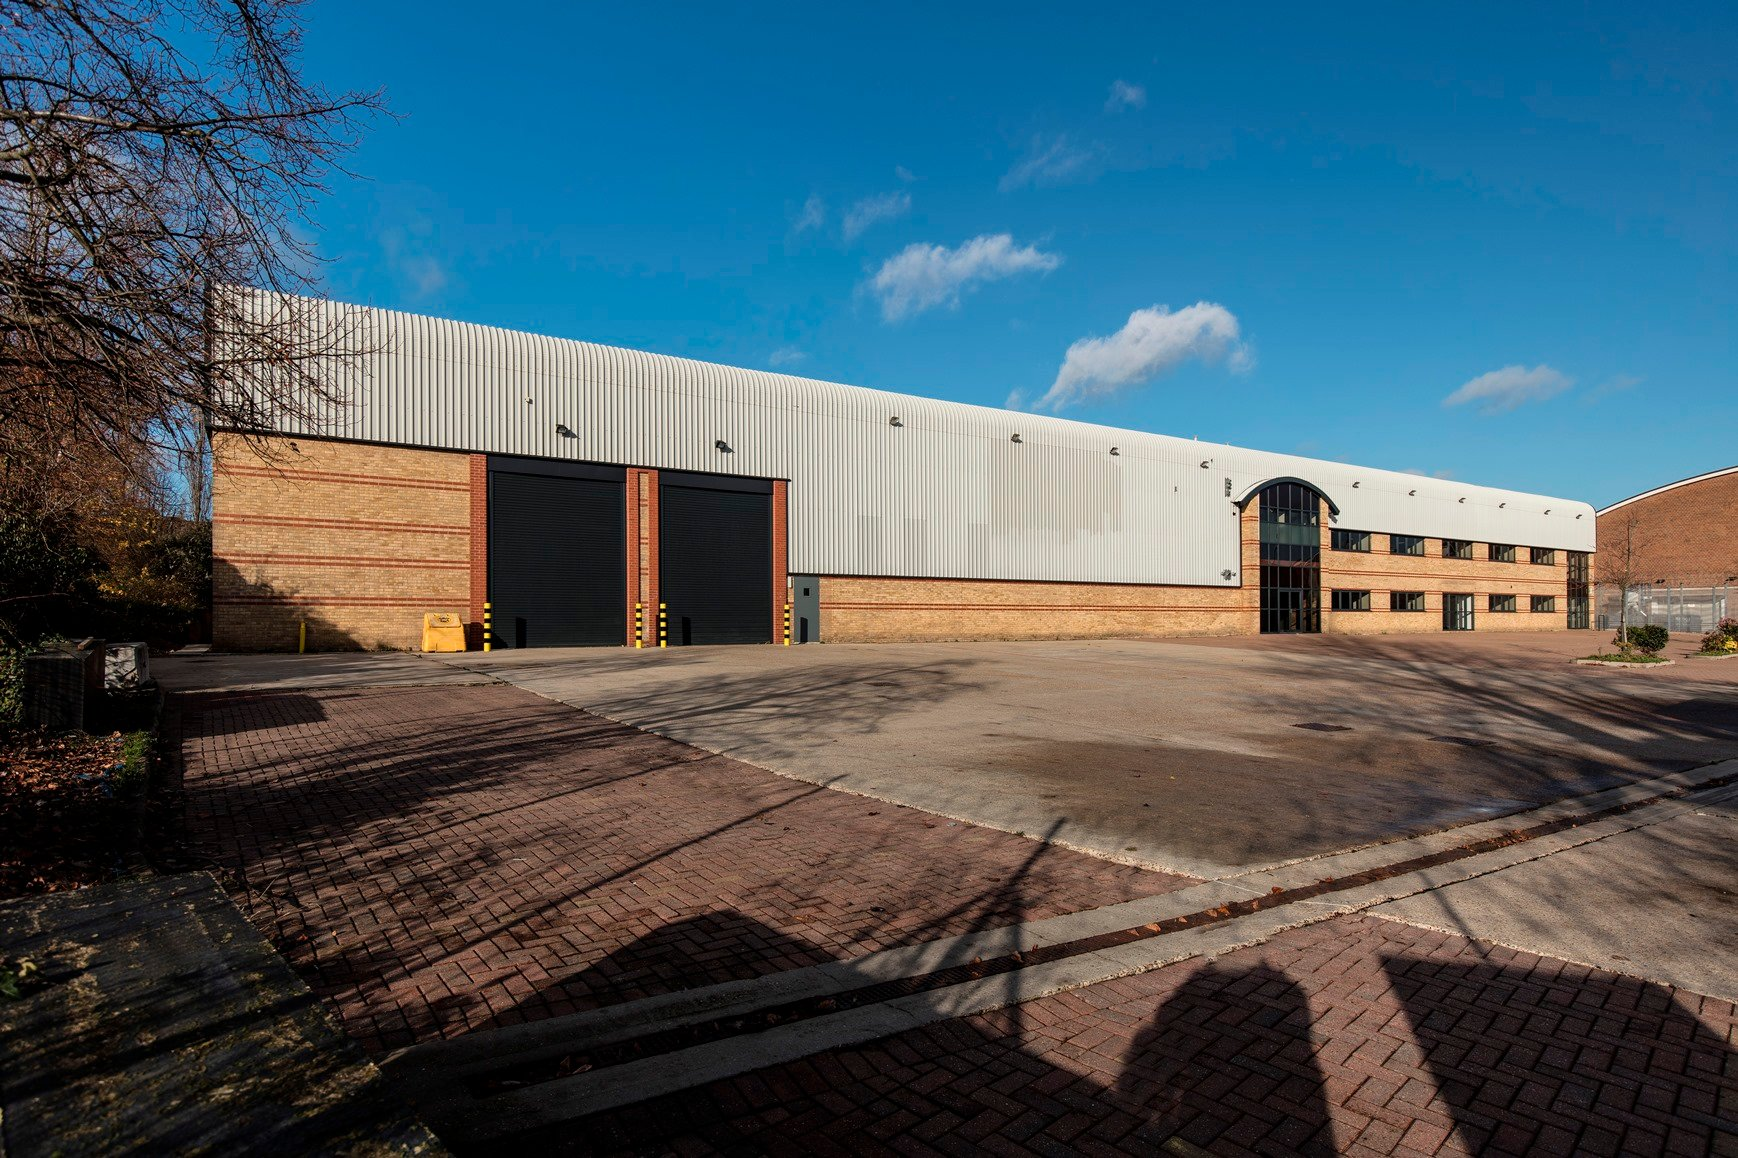 Glenny appointed by Legal & General on newly refurbished warehouse in Loughton